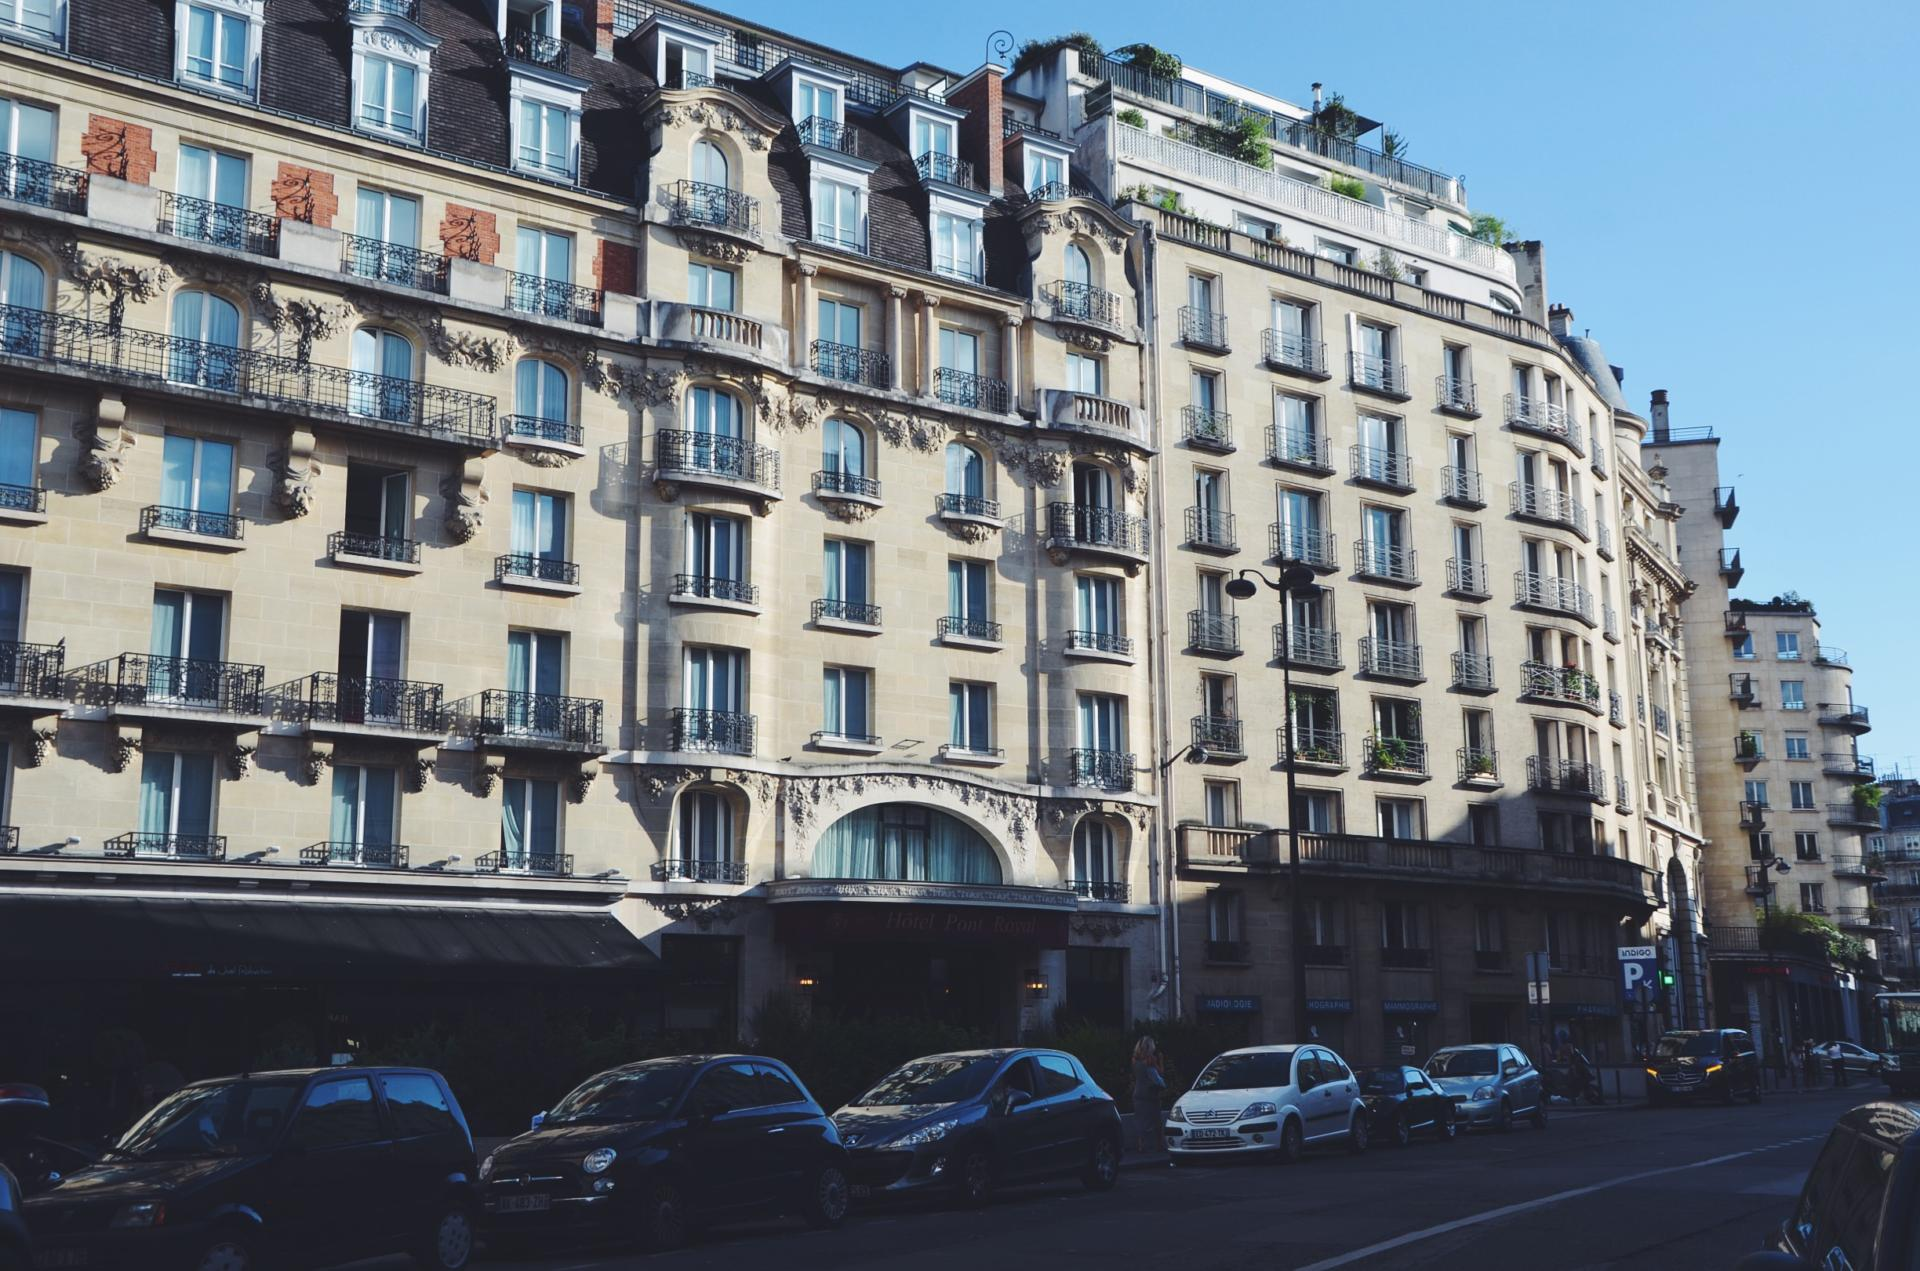 A stay with Hôtel Pont Royal in Paris, France